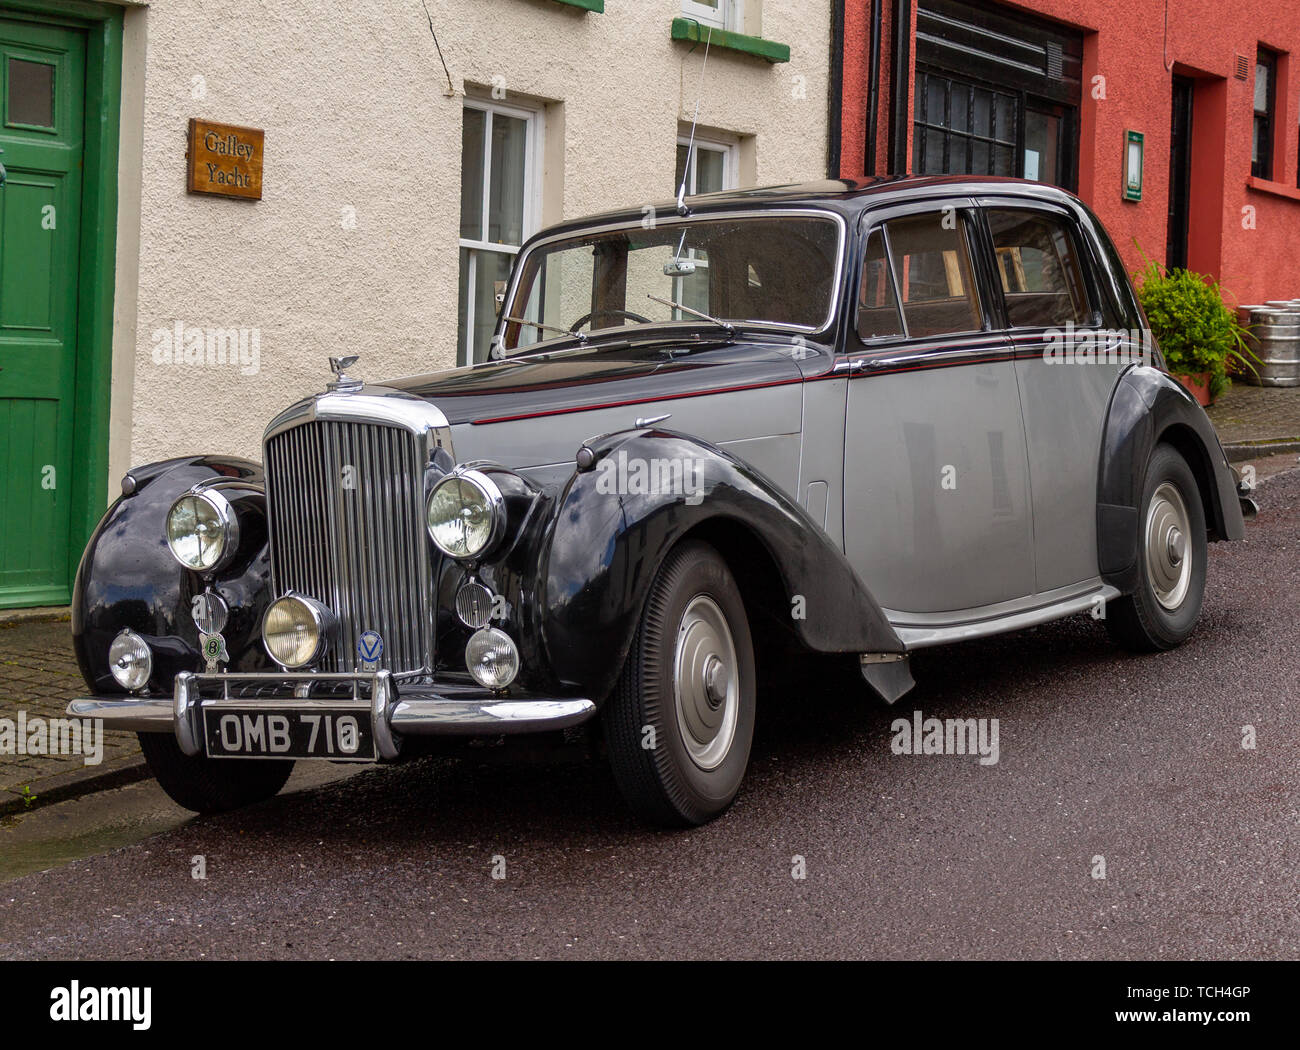 bentley-mkvi-or-mkv1-saloon-or-standard-steel-saloon-big-bore-4566cc-in-black-and-grey-colours-or-colors-TCH4GP.jpg